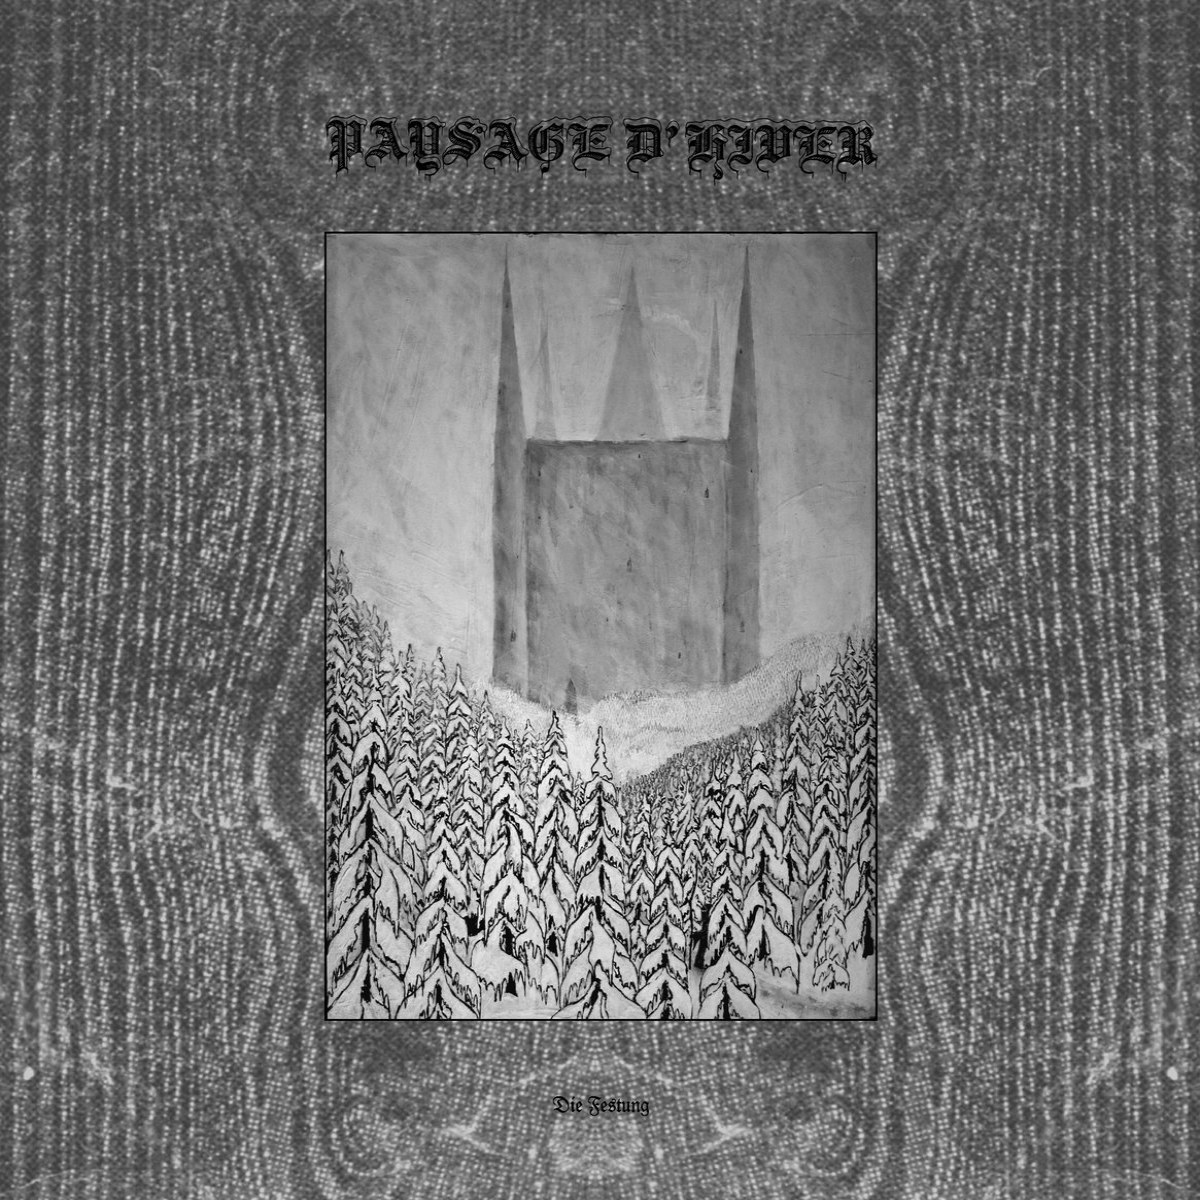 Review for Paysage d'Hiver - Die Festung